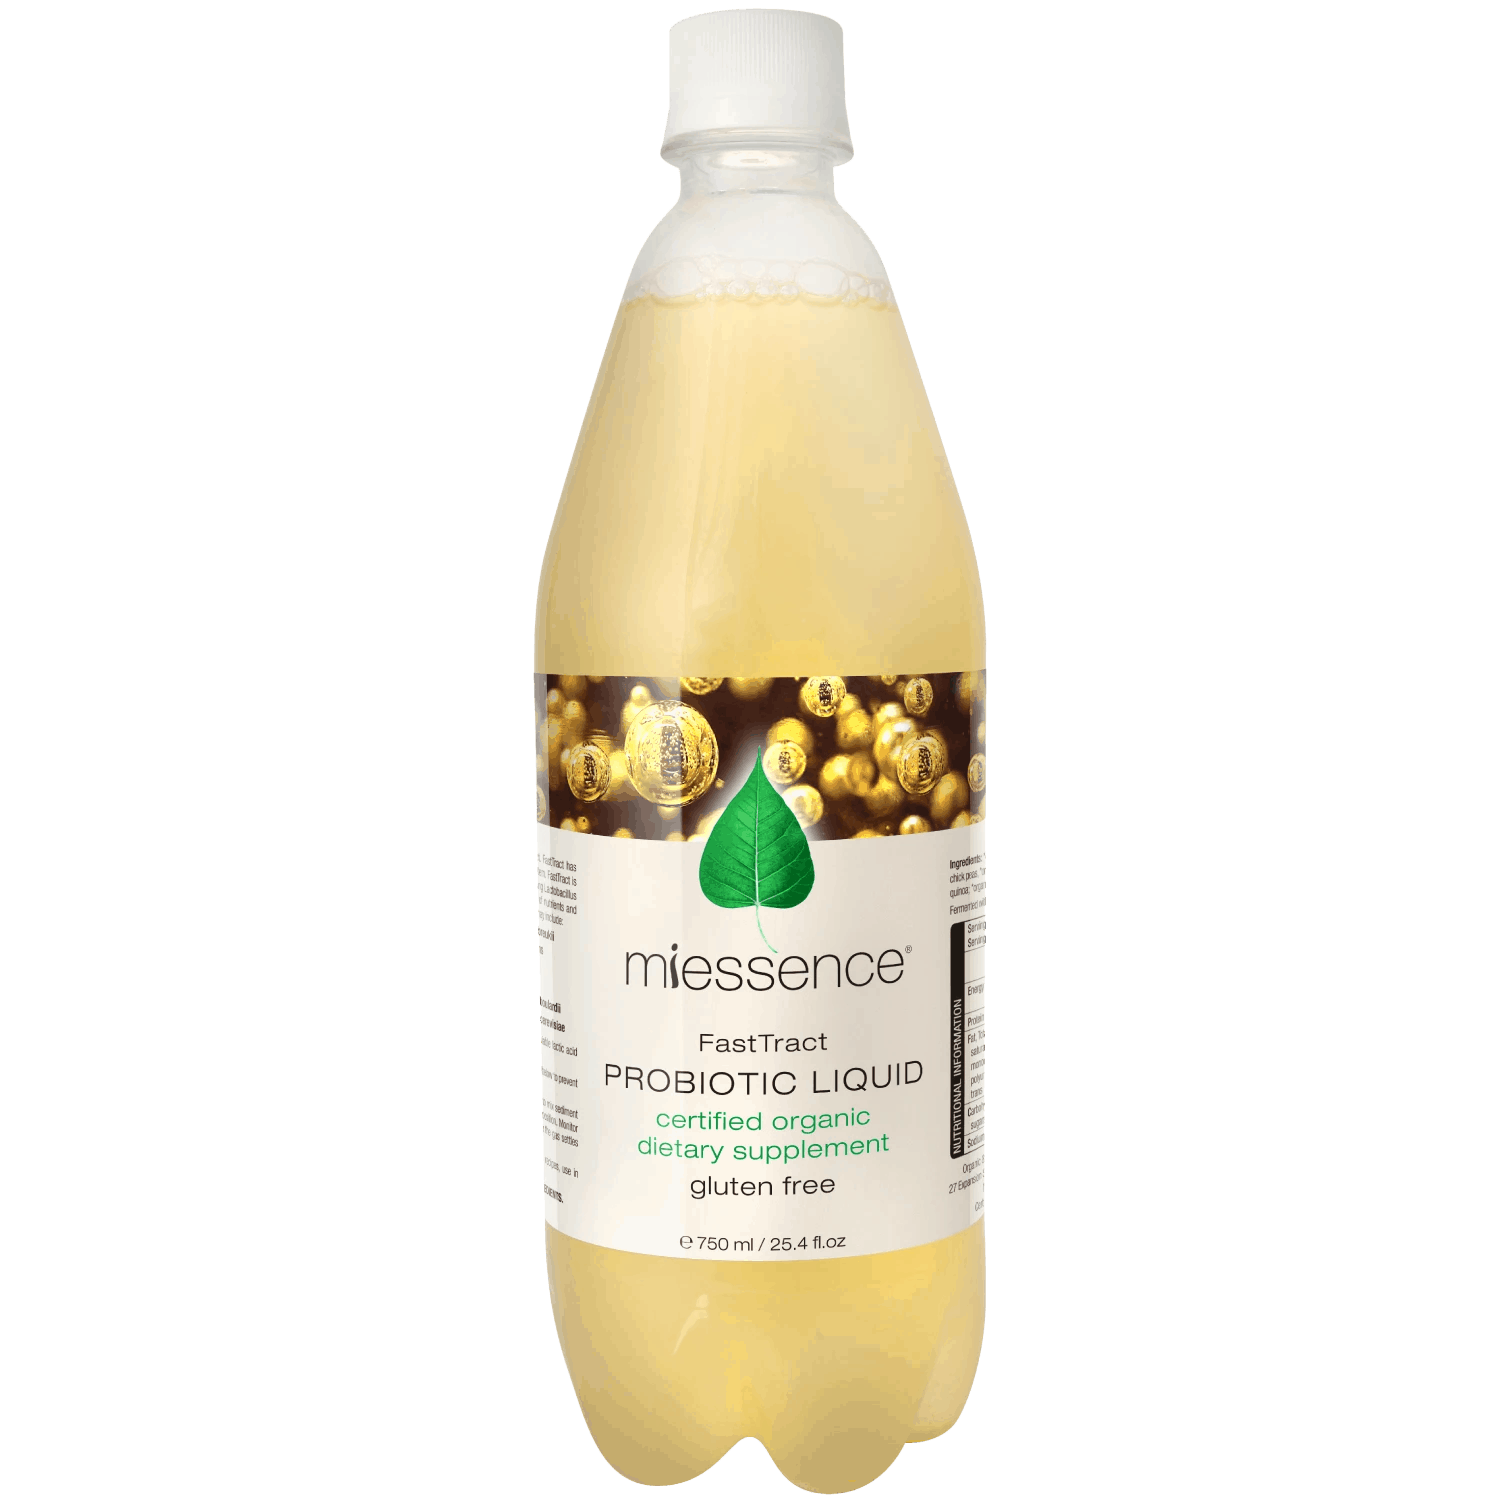 Miessence fastTract probiotic